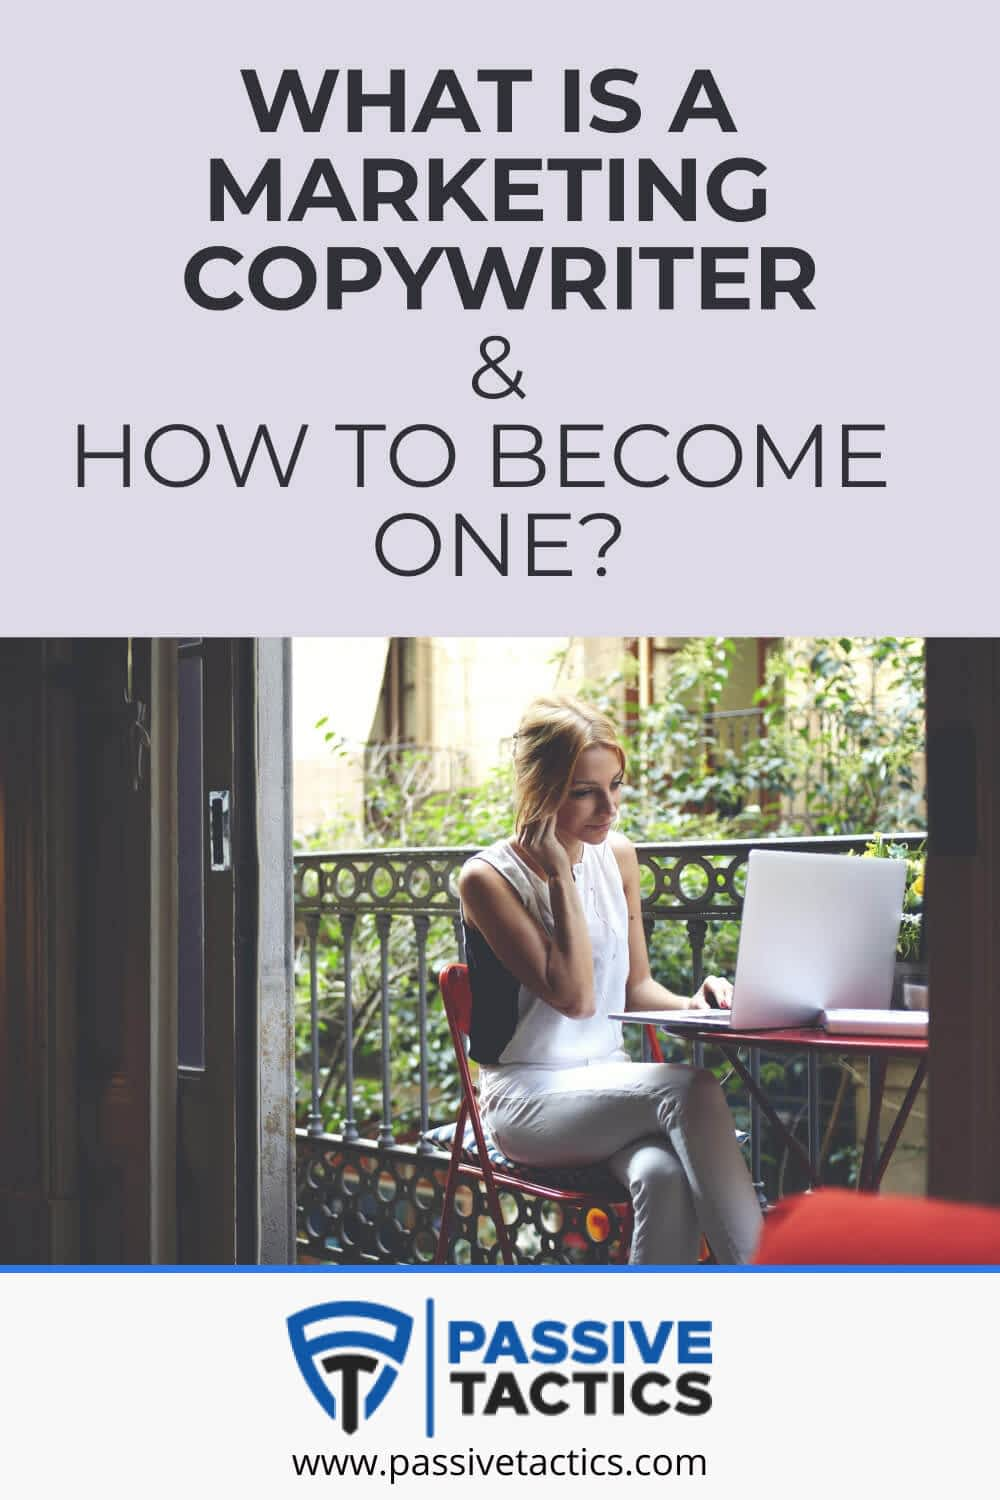 What is a Marketing Copywriter & How To Become One?